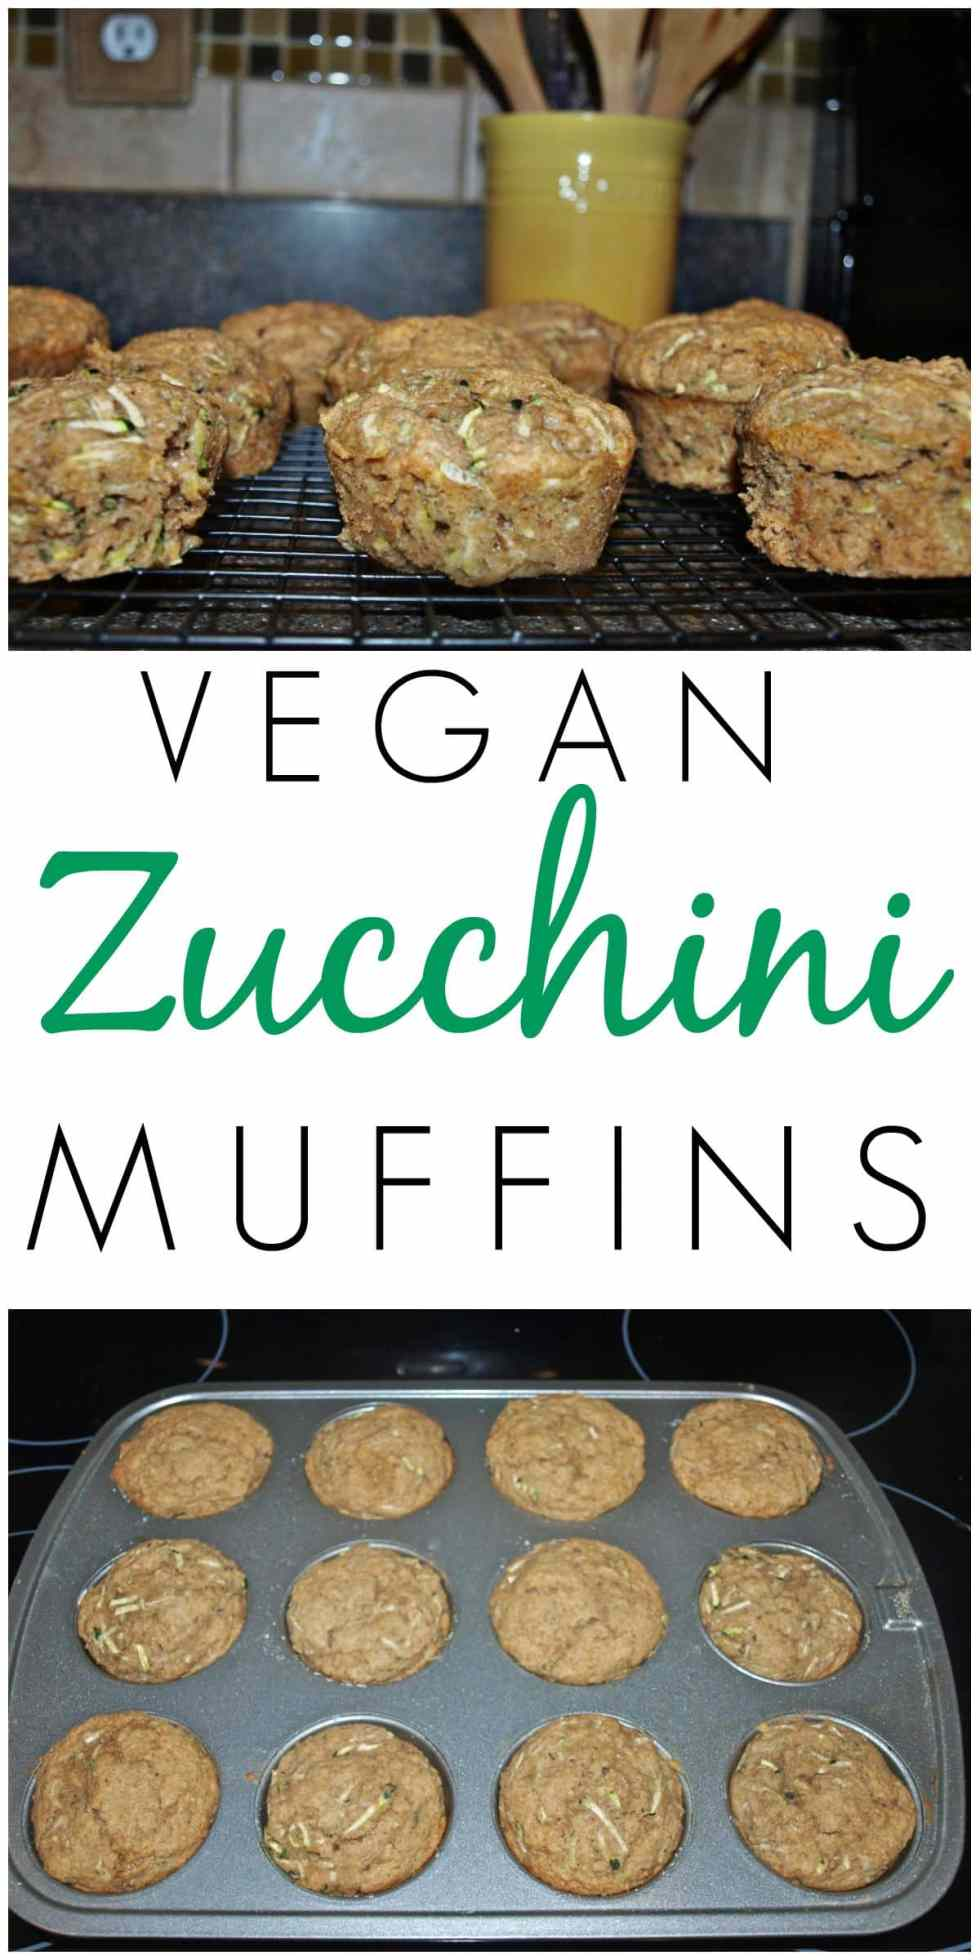 Healthy Vegan Zucchini Muffins recipe! These muffins are a great way to use up all your garden zucchini and even the kids love them!